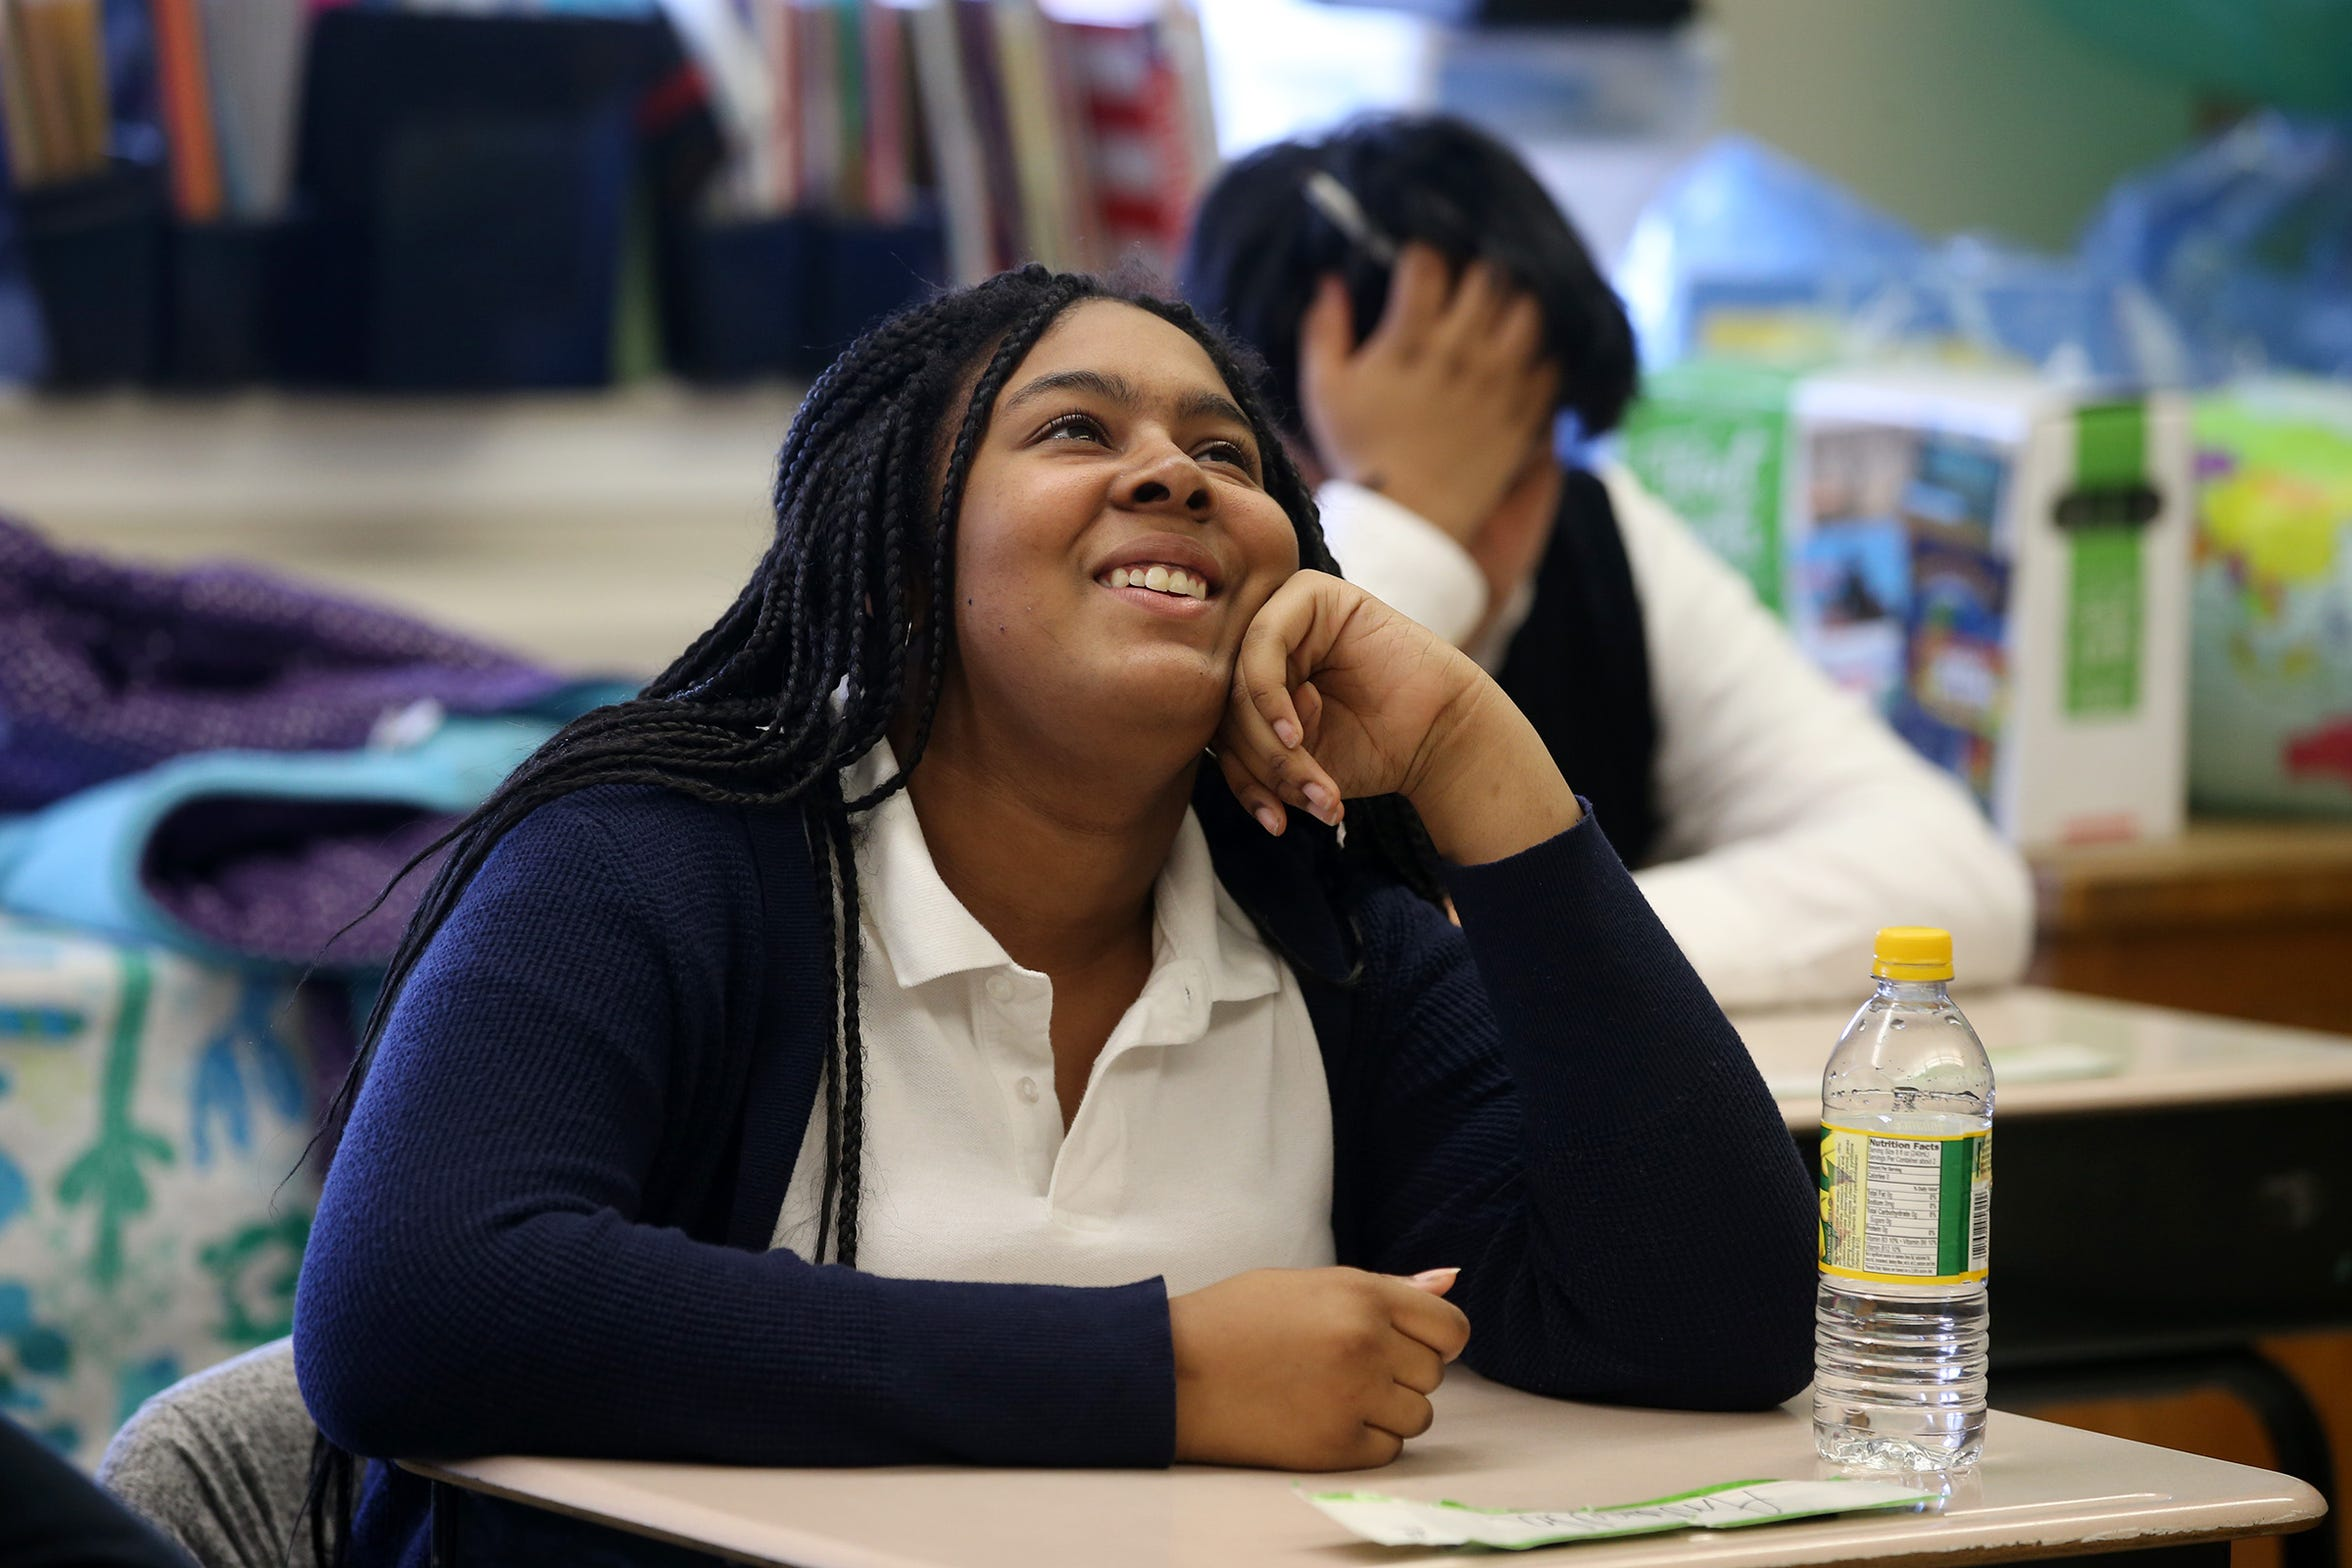 Tori Artis, 14, of Manchester talks about a recent school trip to Samsung in New York City at Our Lady of Mt. Carmel School in Asbury Park, NJ Thursday, March 7, 2019.